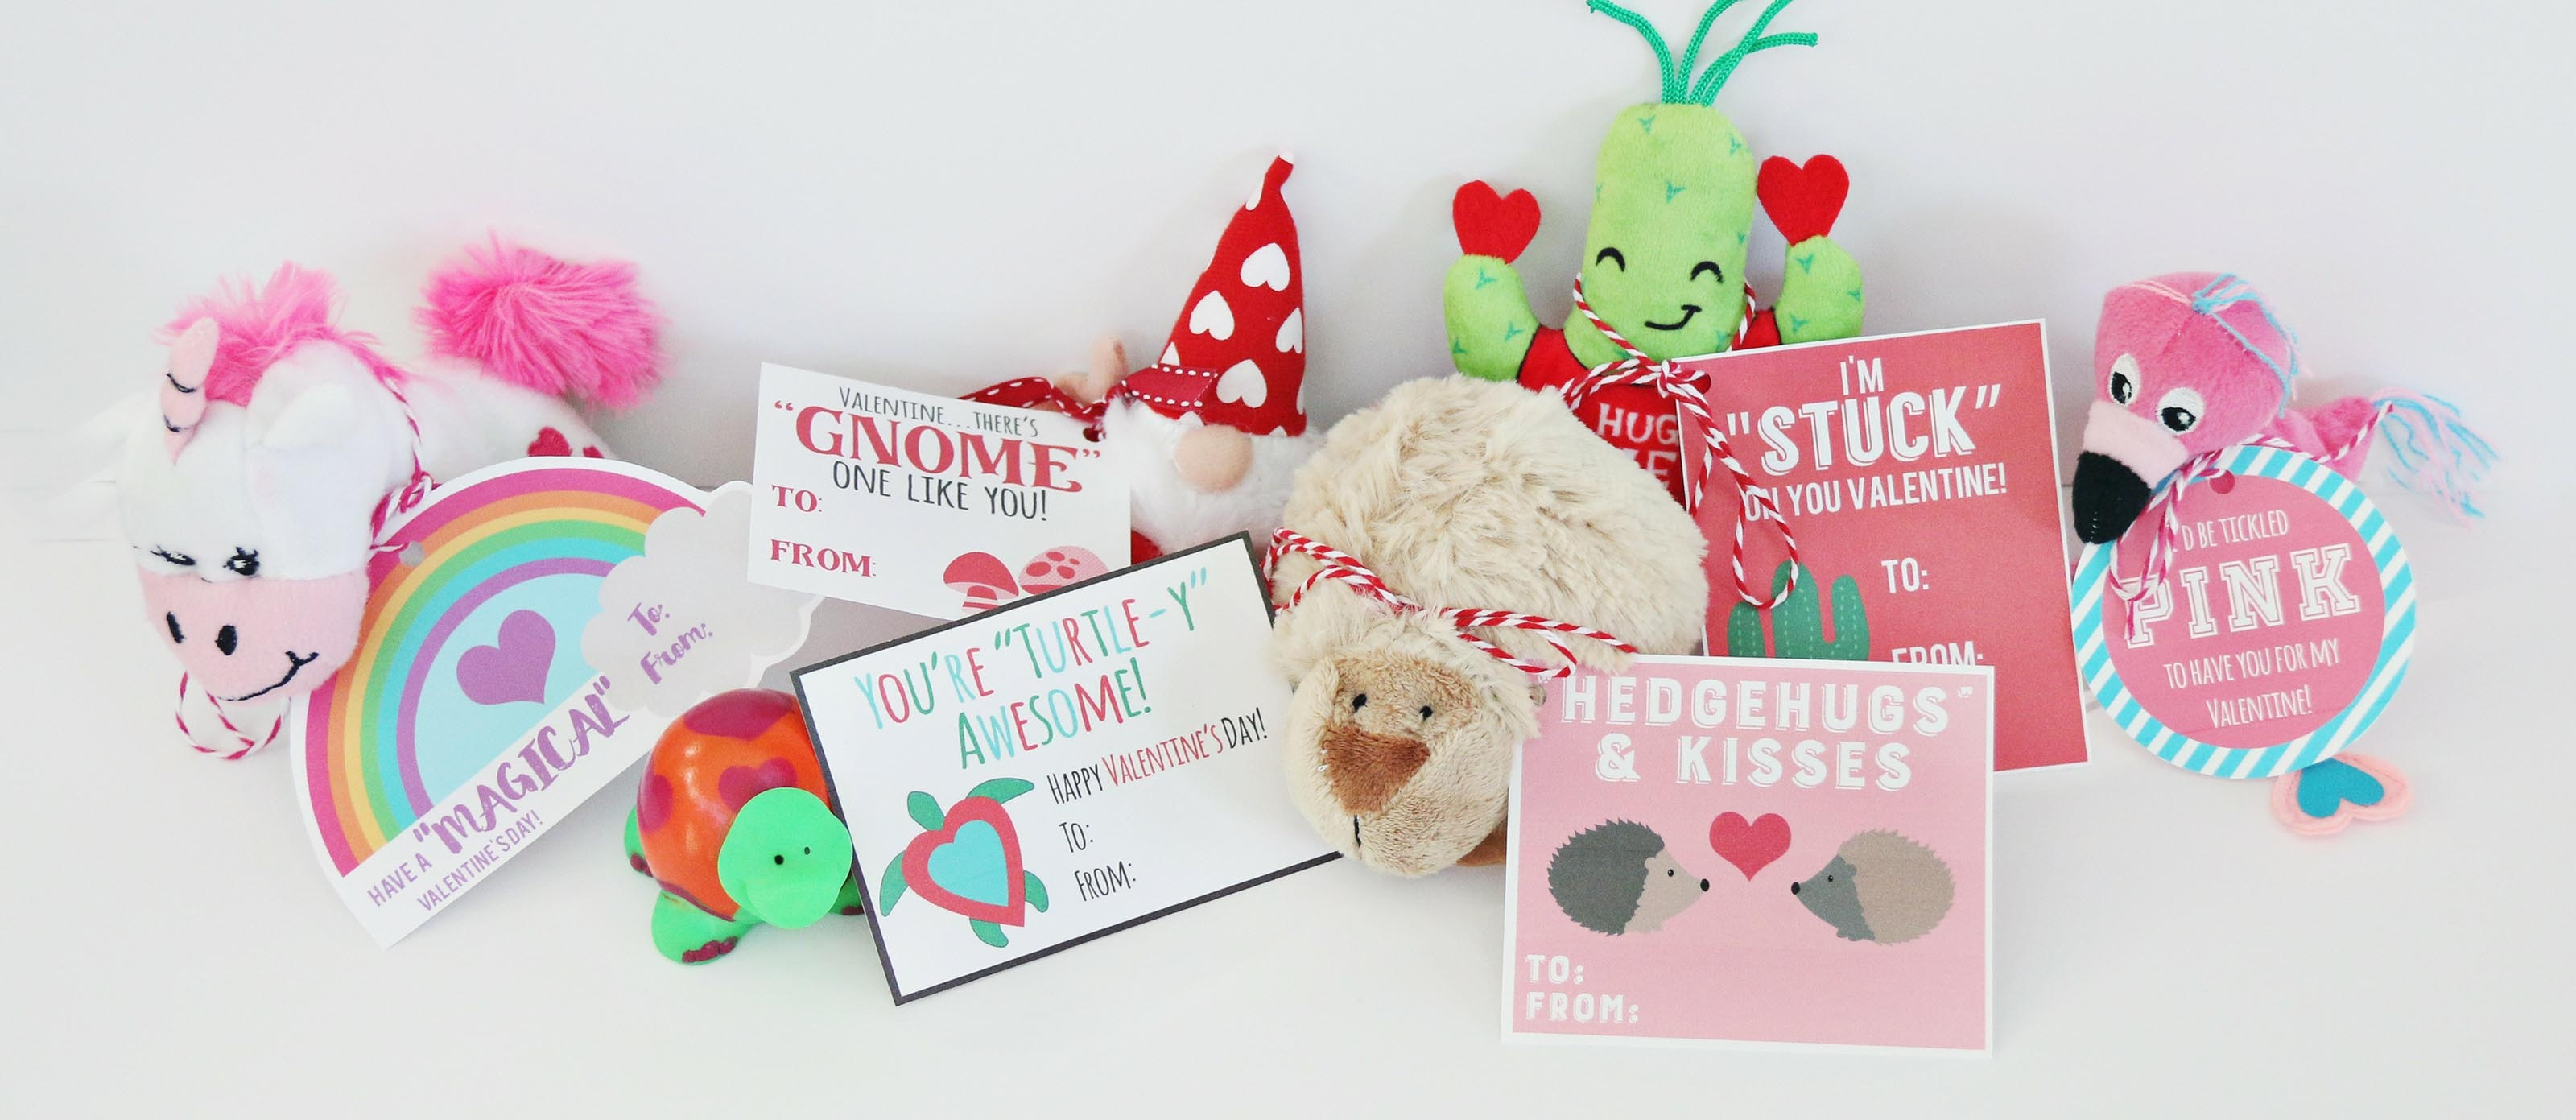 20 Free Valentine Printable Cards | Fun365 - Free Printable Football Valentines Day Cards